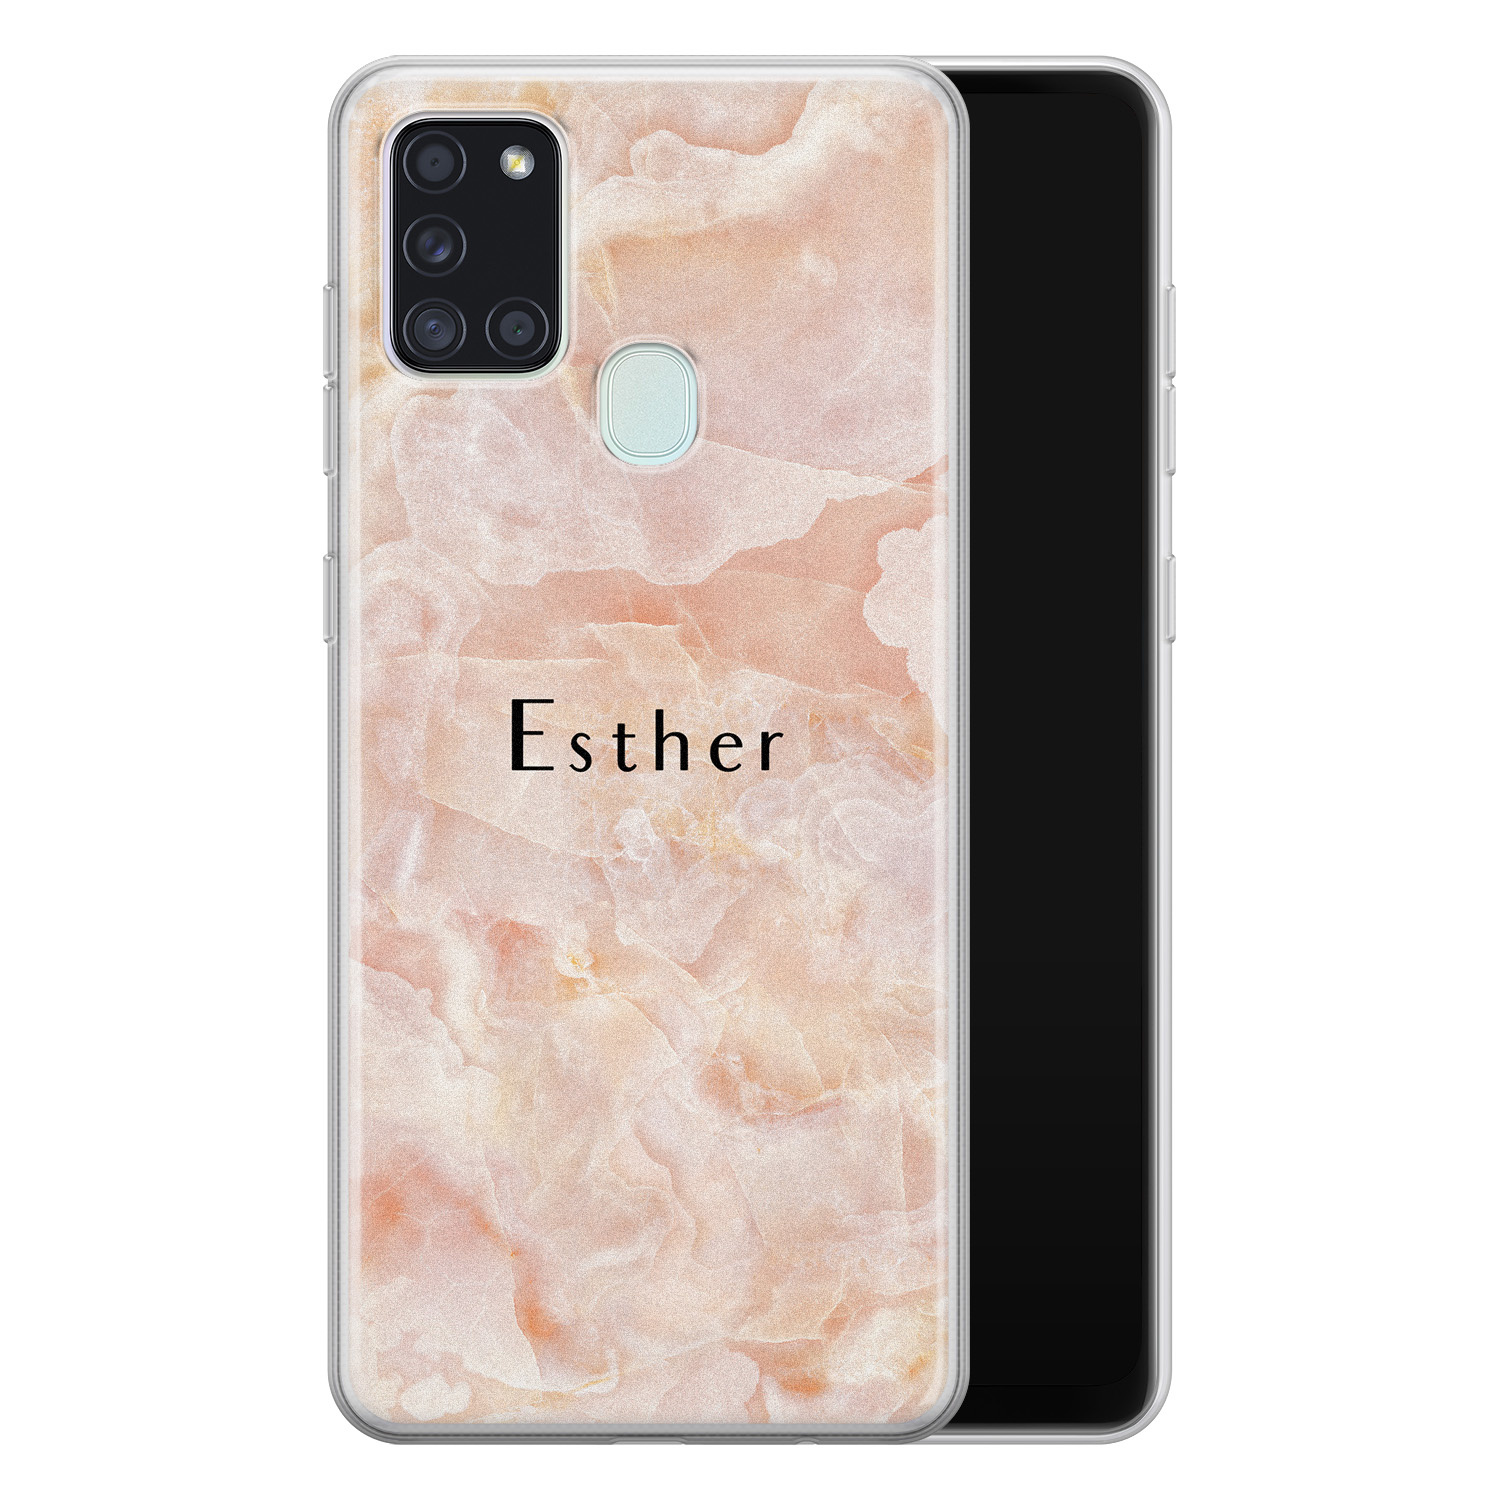 Samsung Galaxy A21s siliconen hoesje ontwerpen - Marble sunkissed